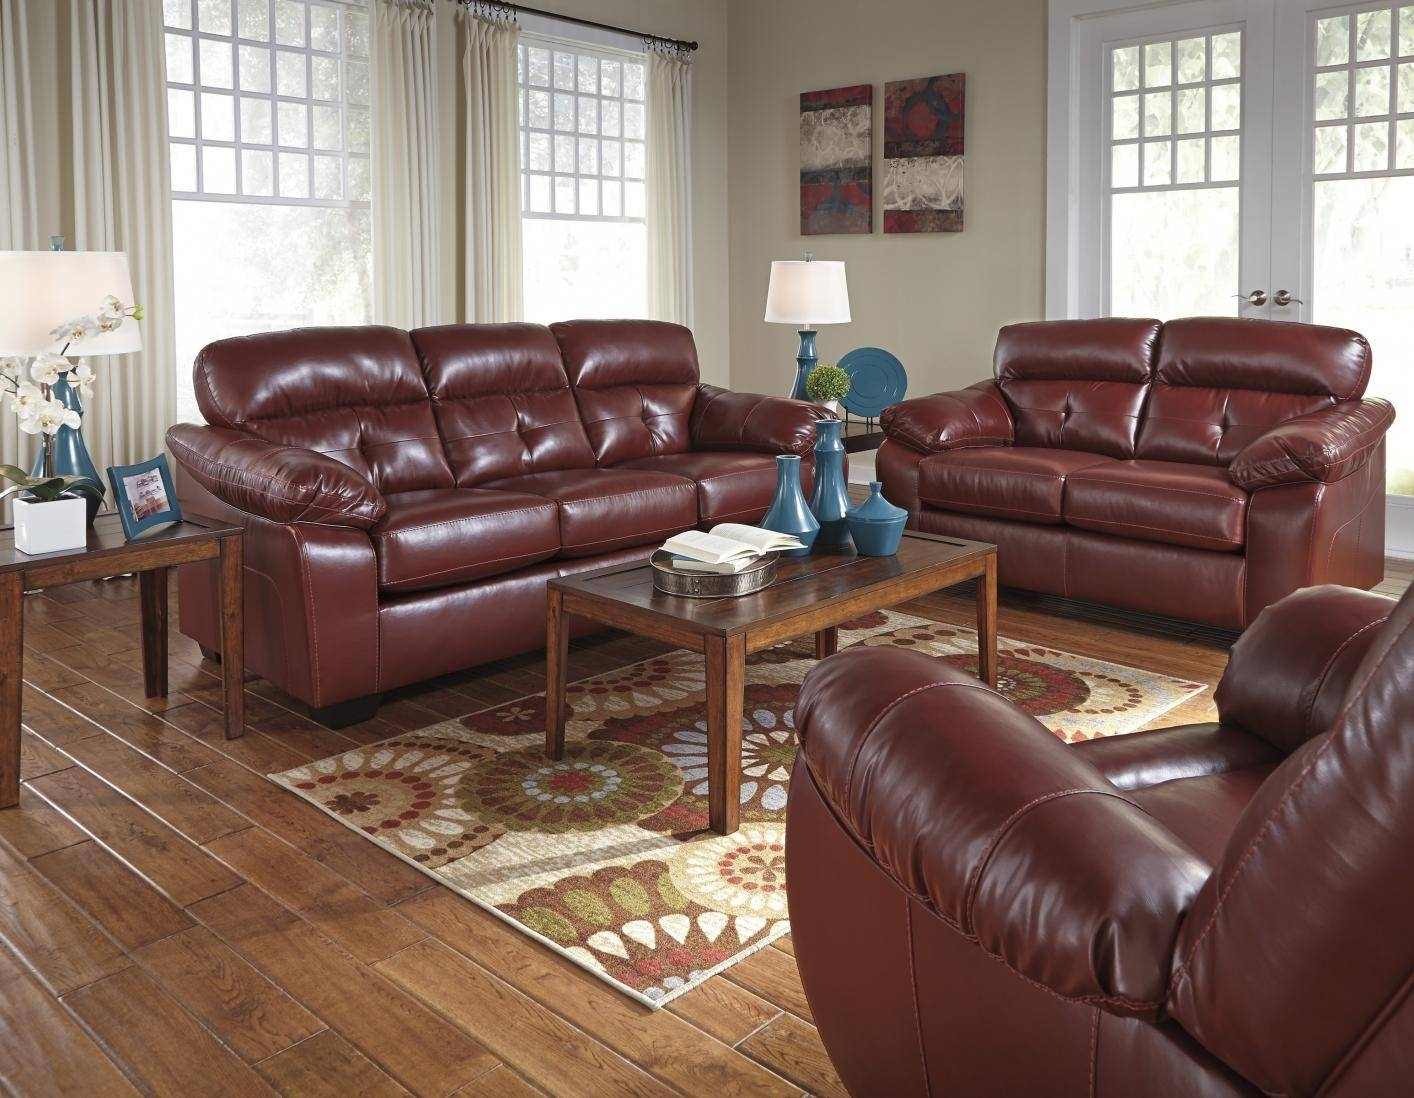 Bench Craft Leather Sofas | Centerfieldbar for Benchcraft Leather Sofas (Image 3 of 15)